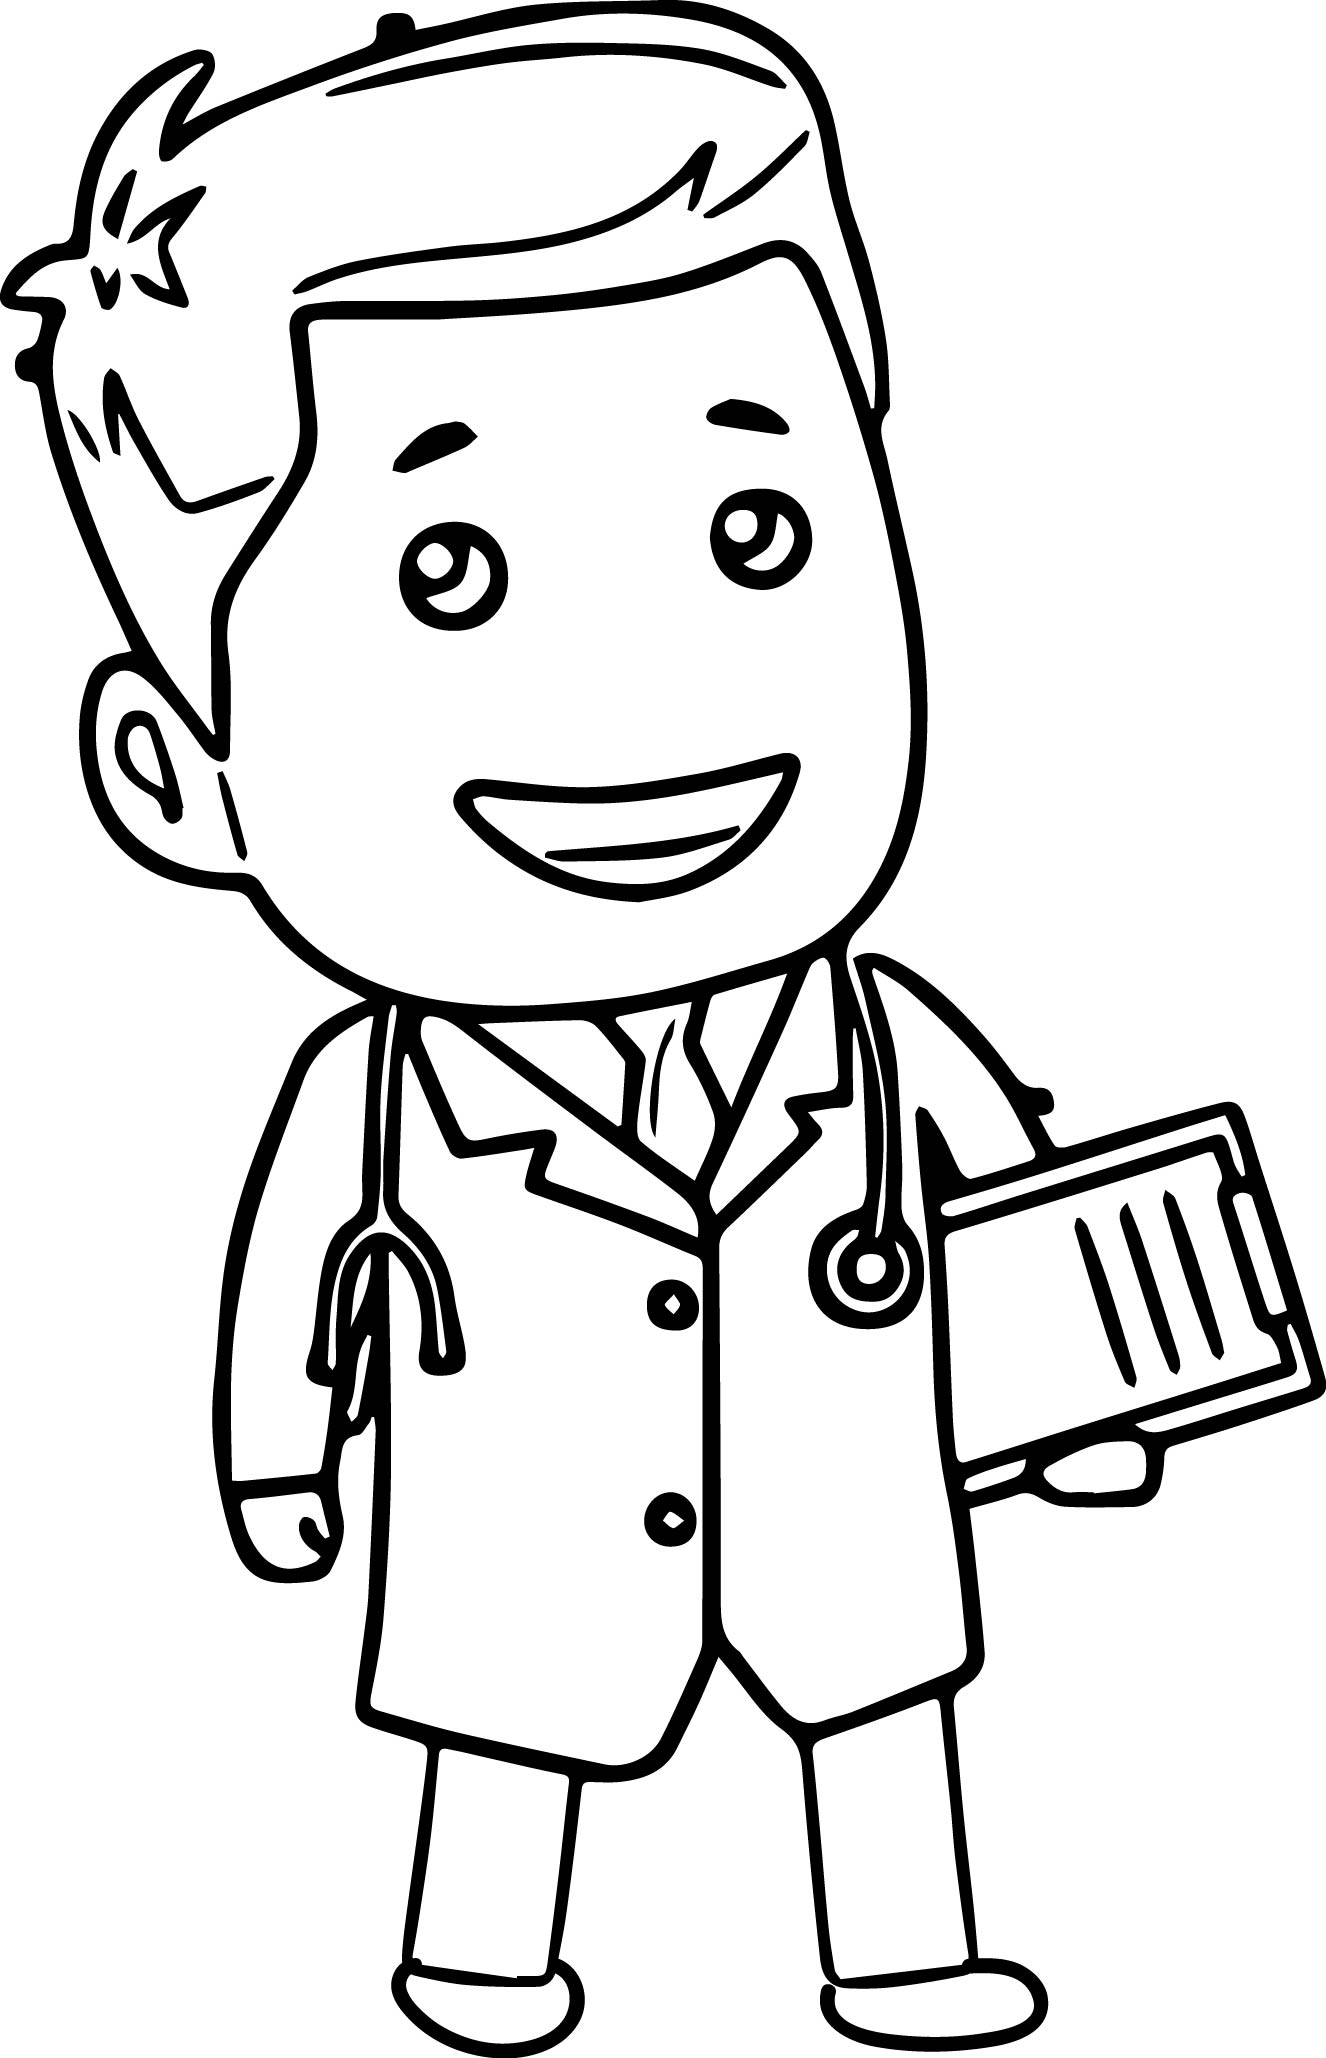 1326x2058 Doctor Tools Clipart Doctor Cartoon Coloring Page Wecoloringpage